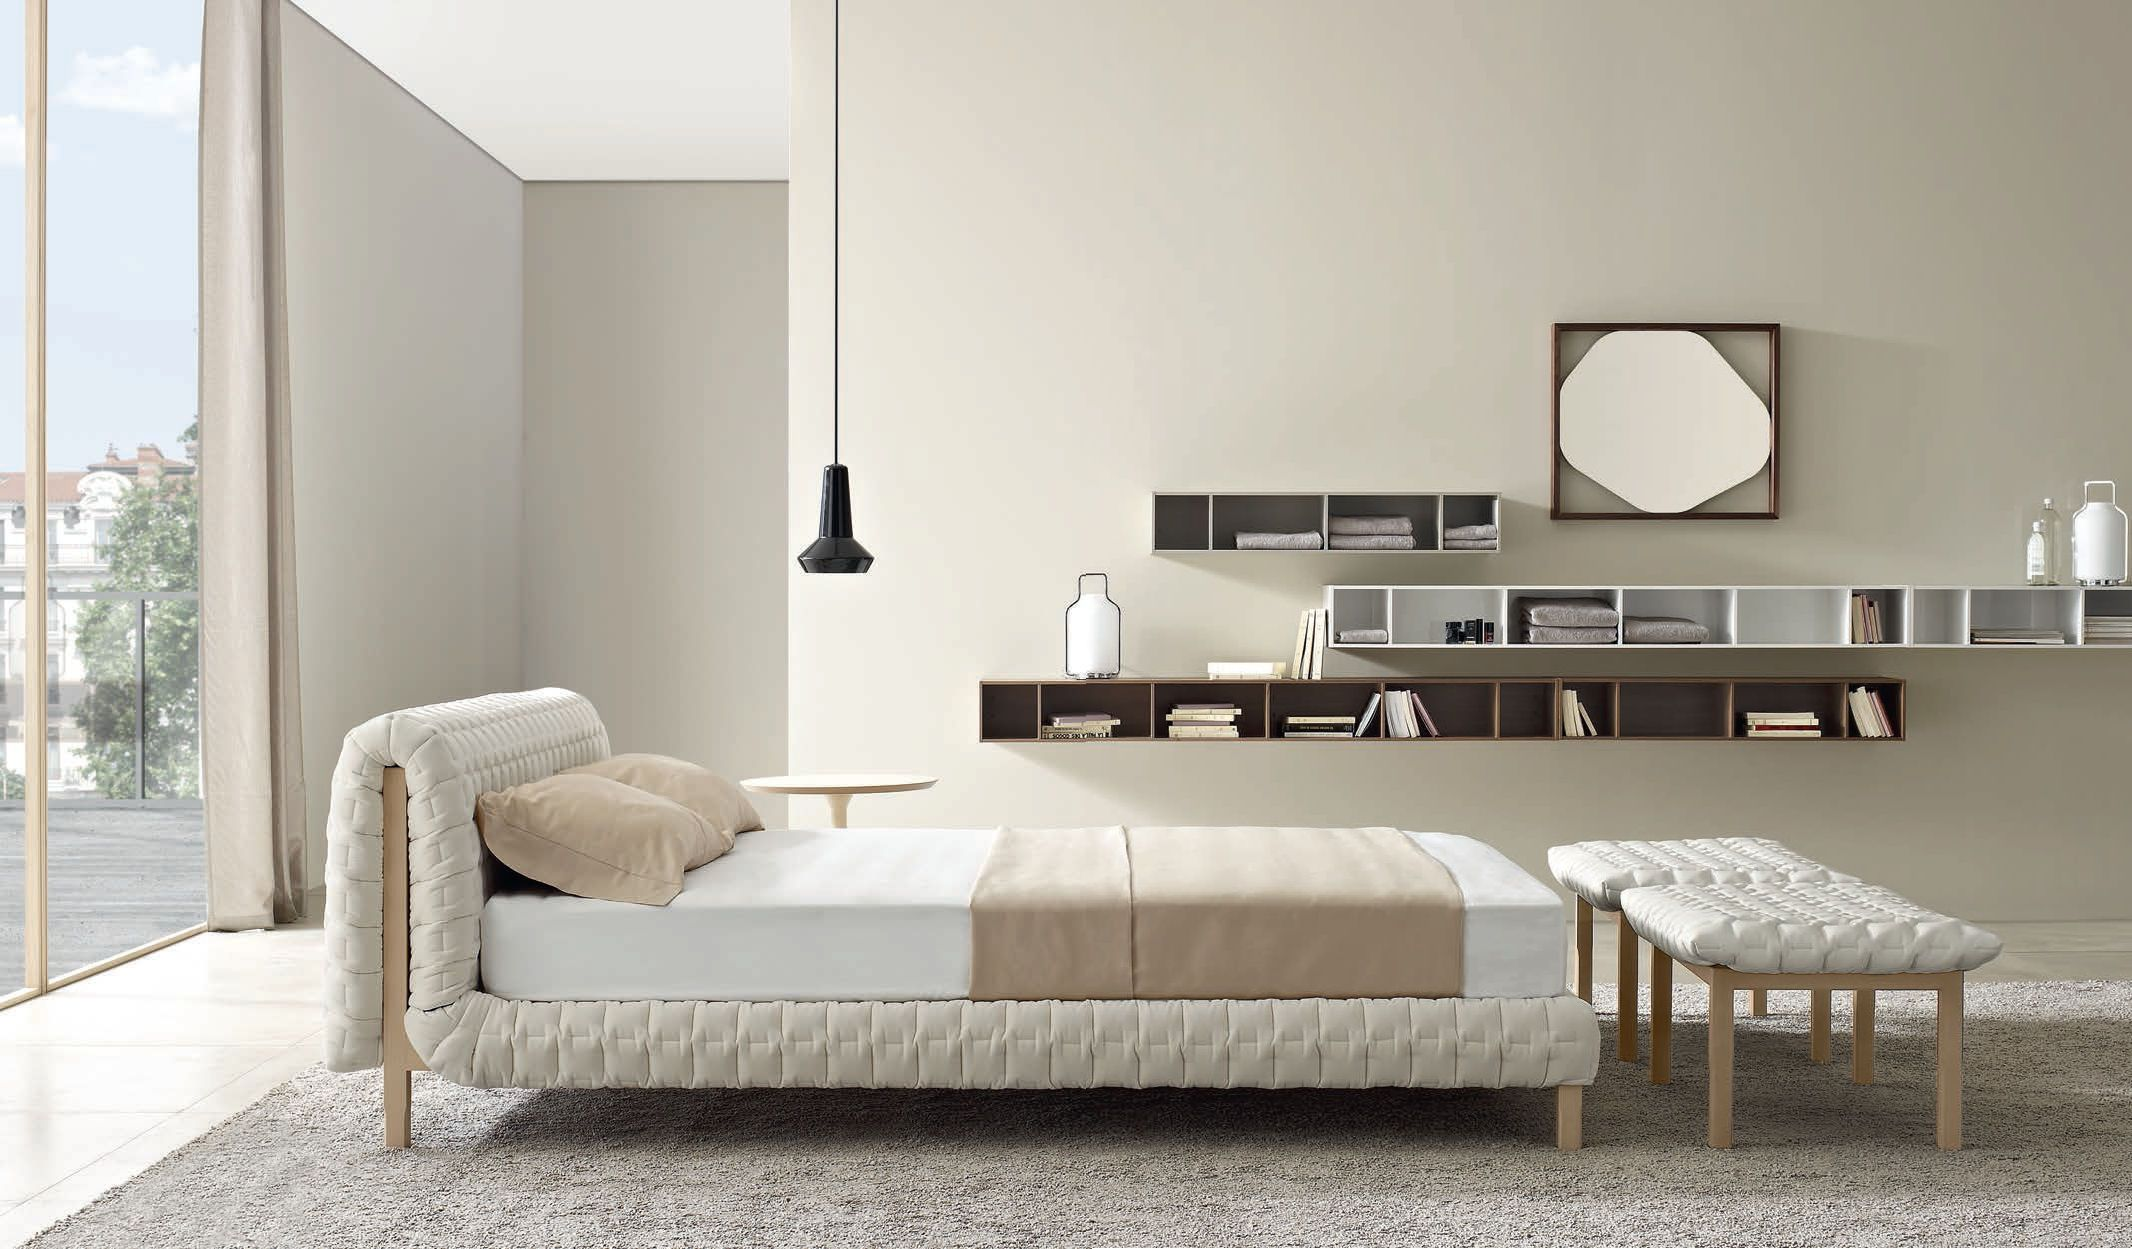 Ligne Roset Ruché Bed Low Headboard | A Bed to Dream Well | Pinterest